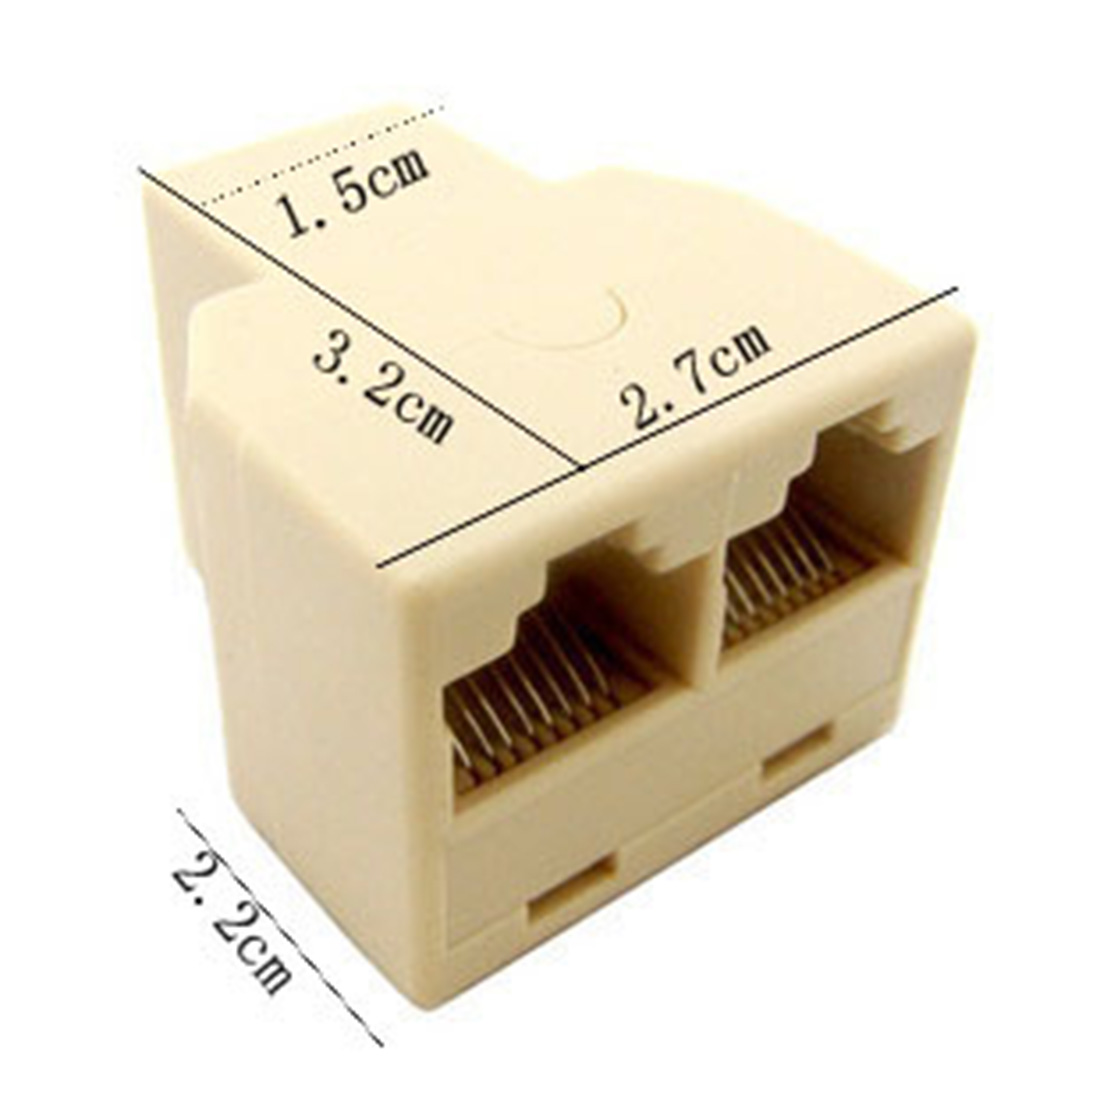 Высокая RJ45 кабель Ethernet LAN Порты и разъёмы от 1 до 2 Splitter гнезда RJ45 Splitter Разъем CAT5 LAN Ethernet Splitter адаптер 8P8C сети